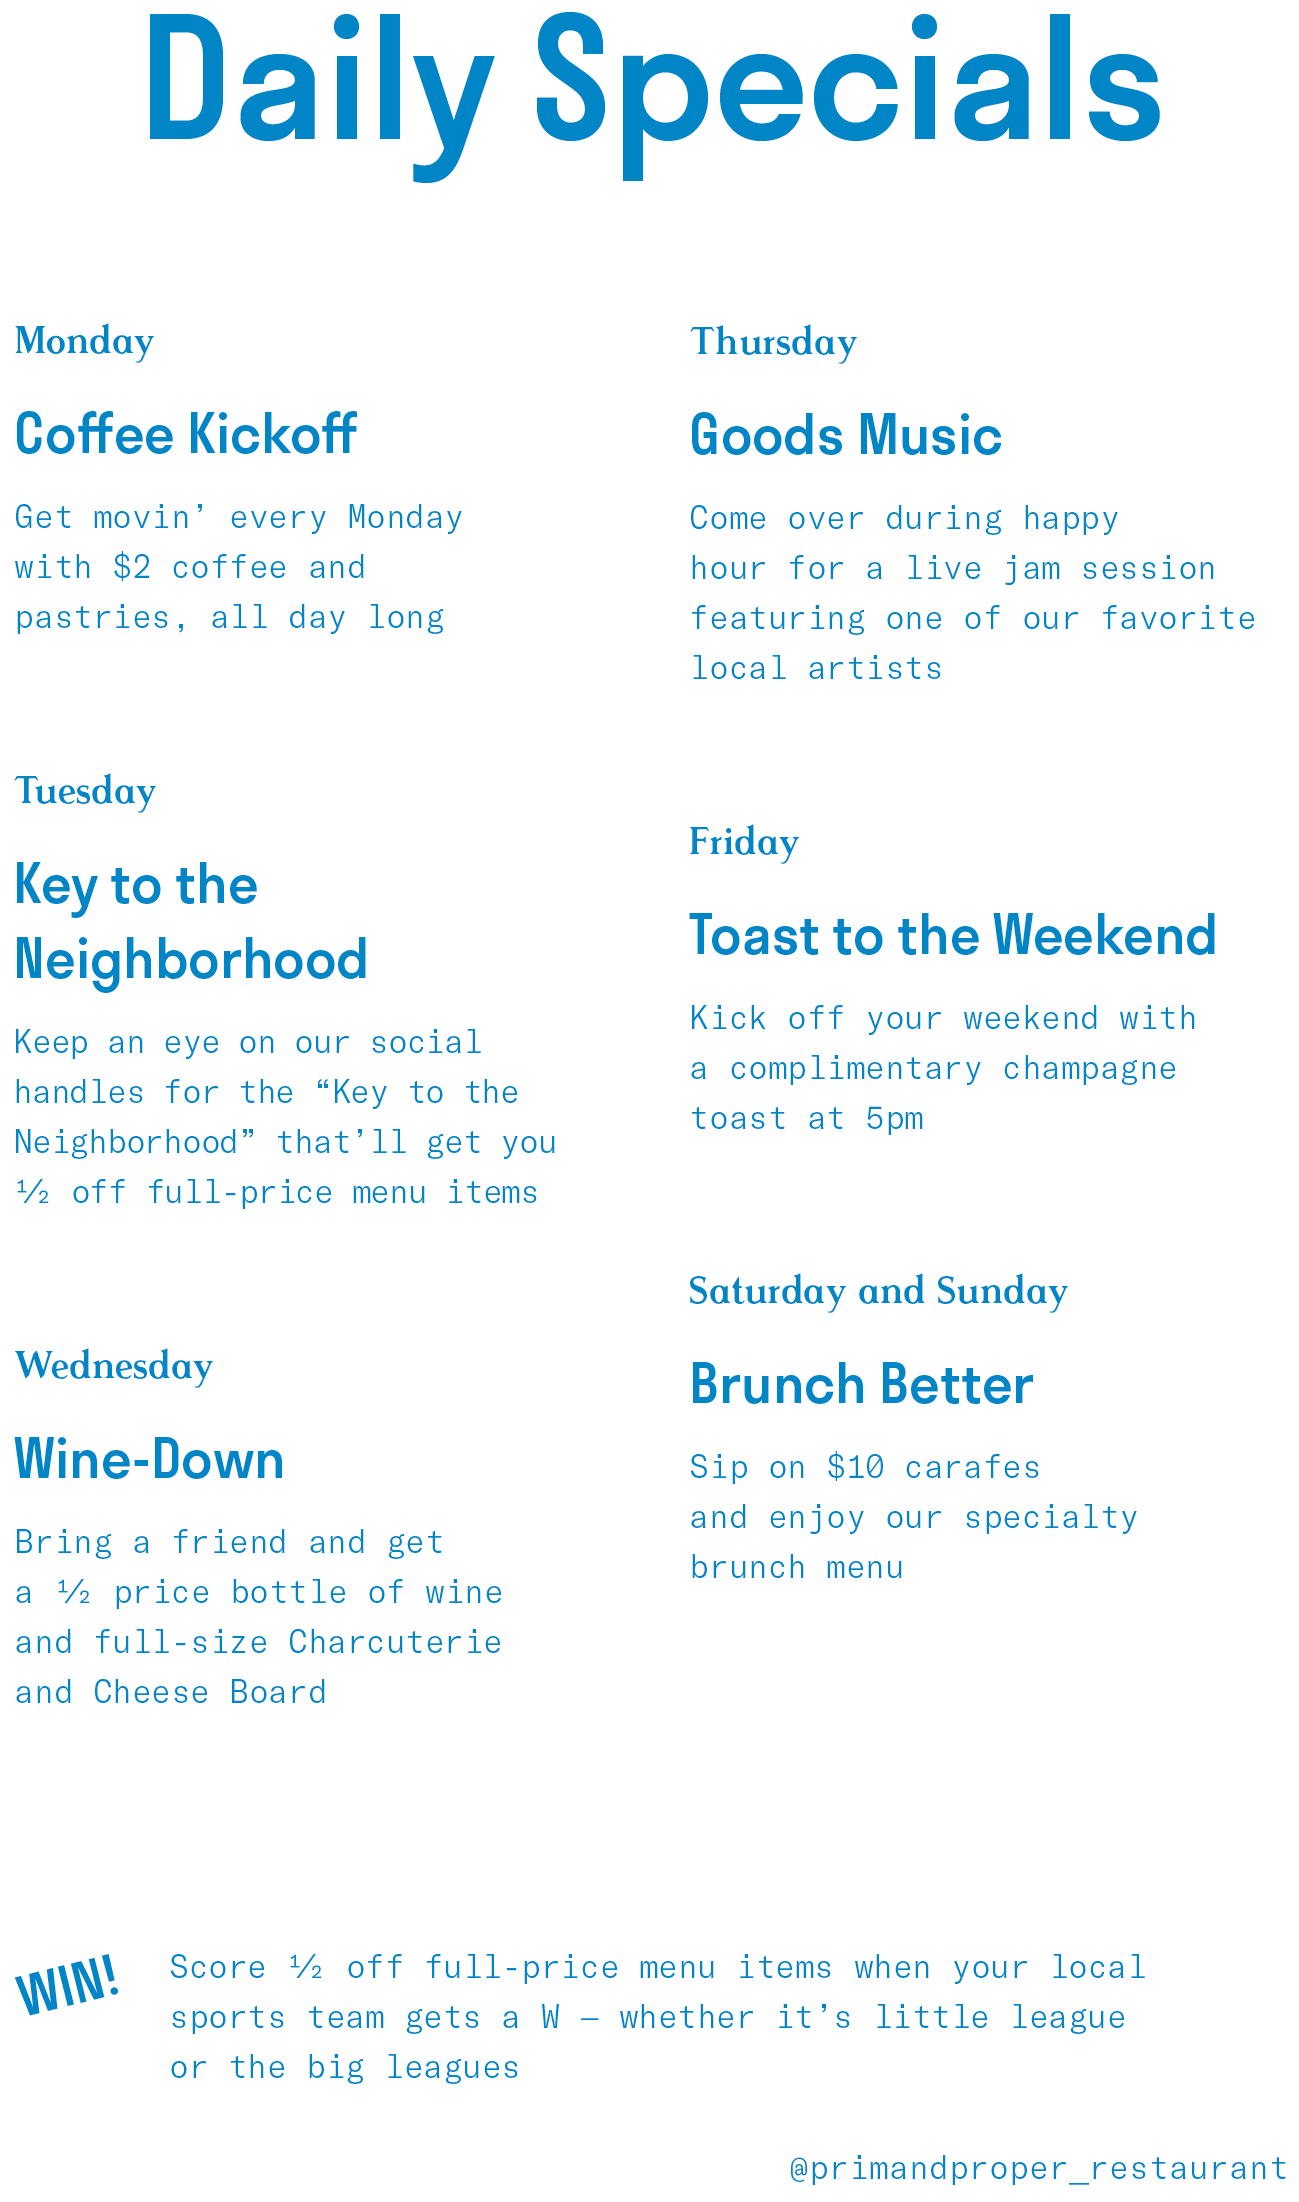 PP-Daily-Specials-RLS.png